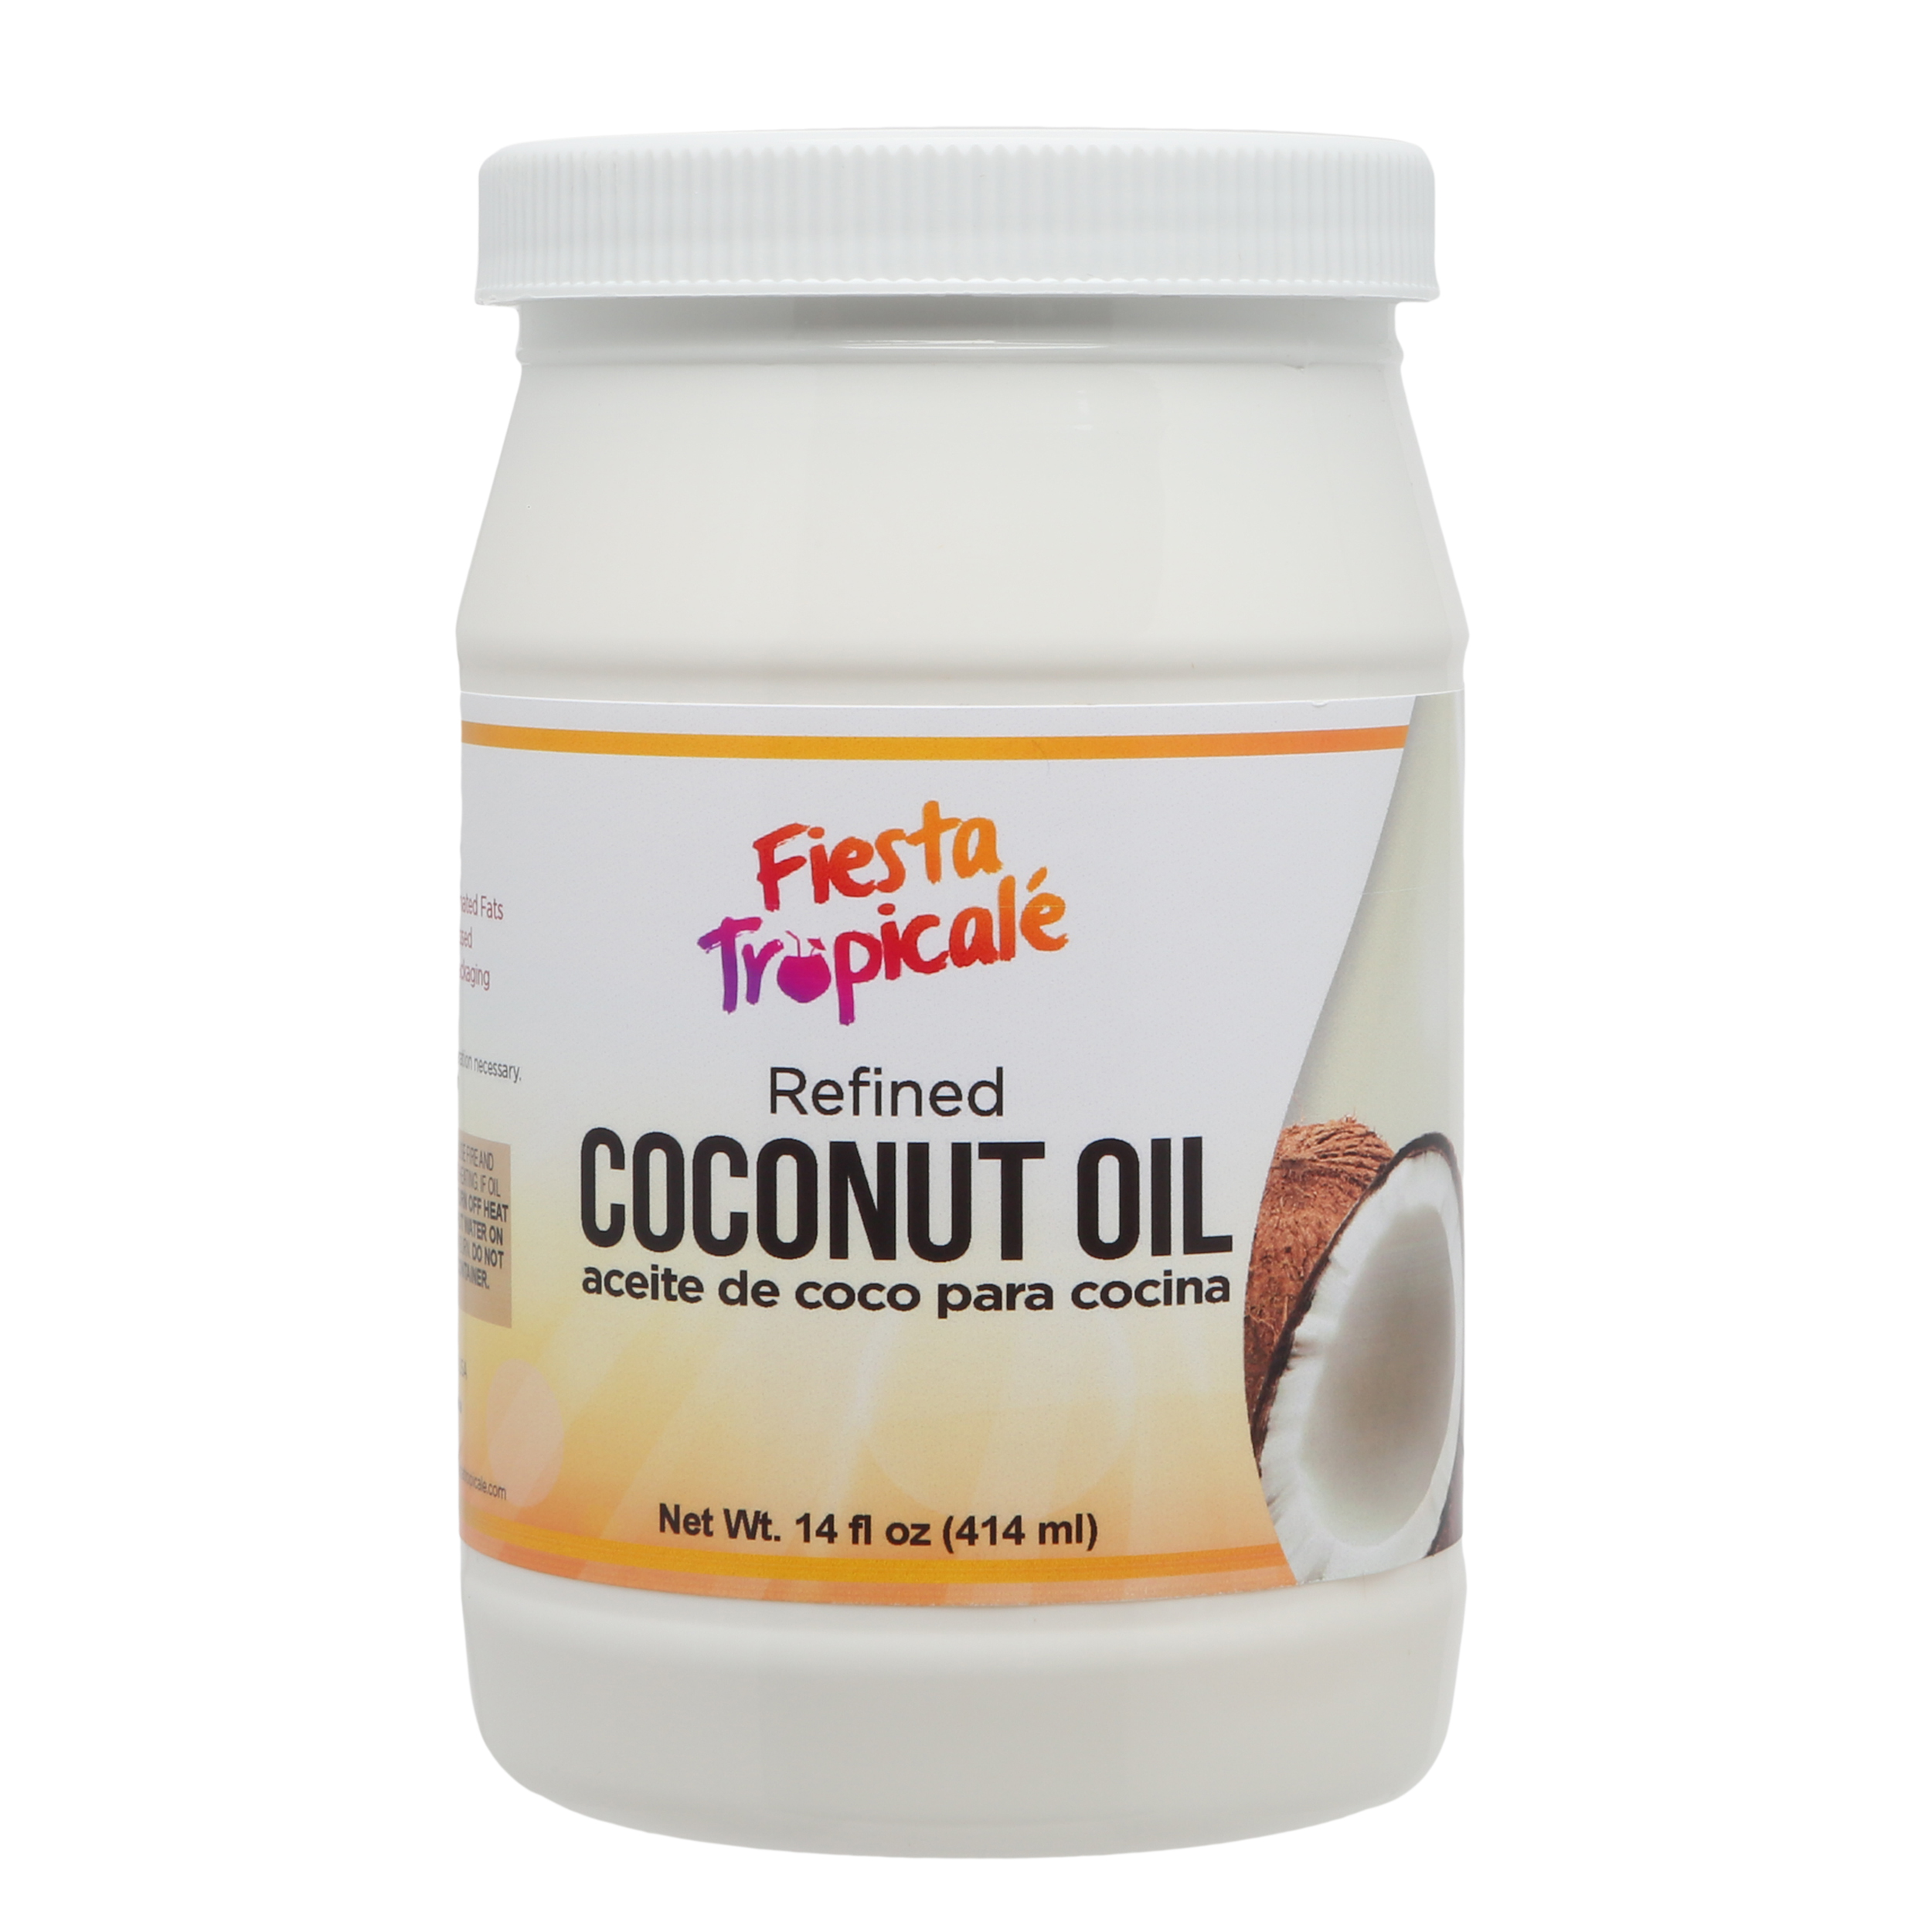 Fiesta Tropicale Refined Coconut Oil